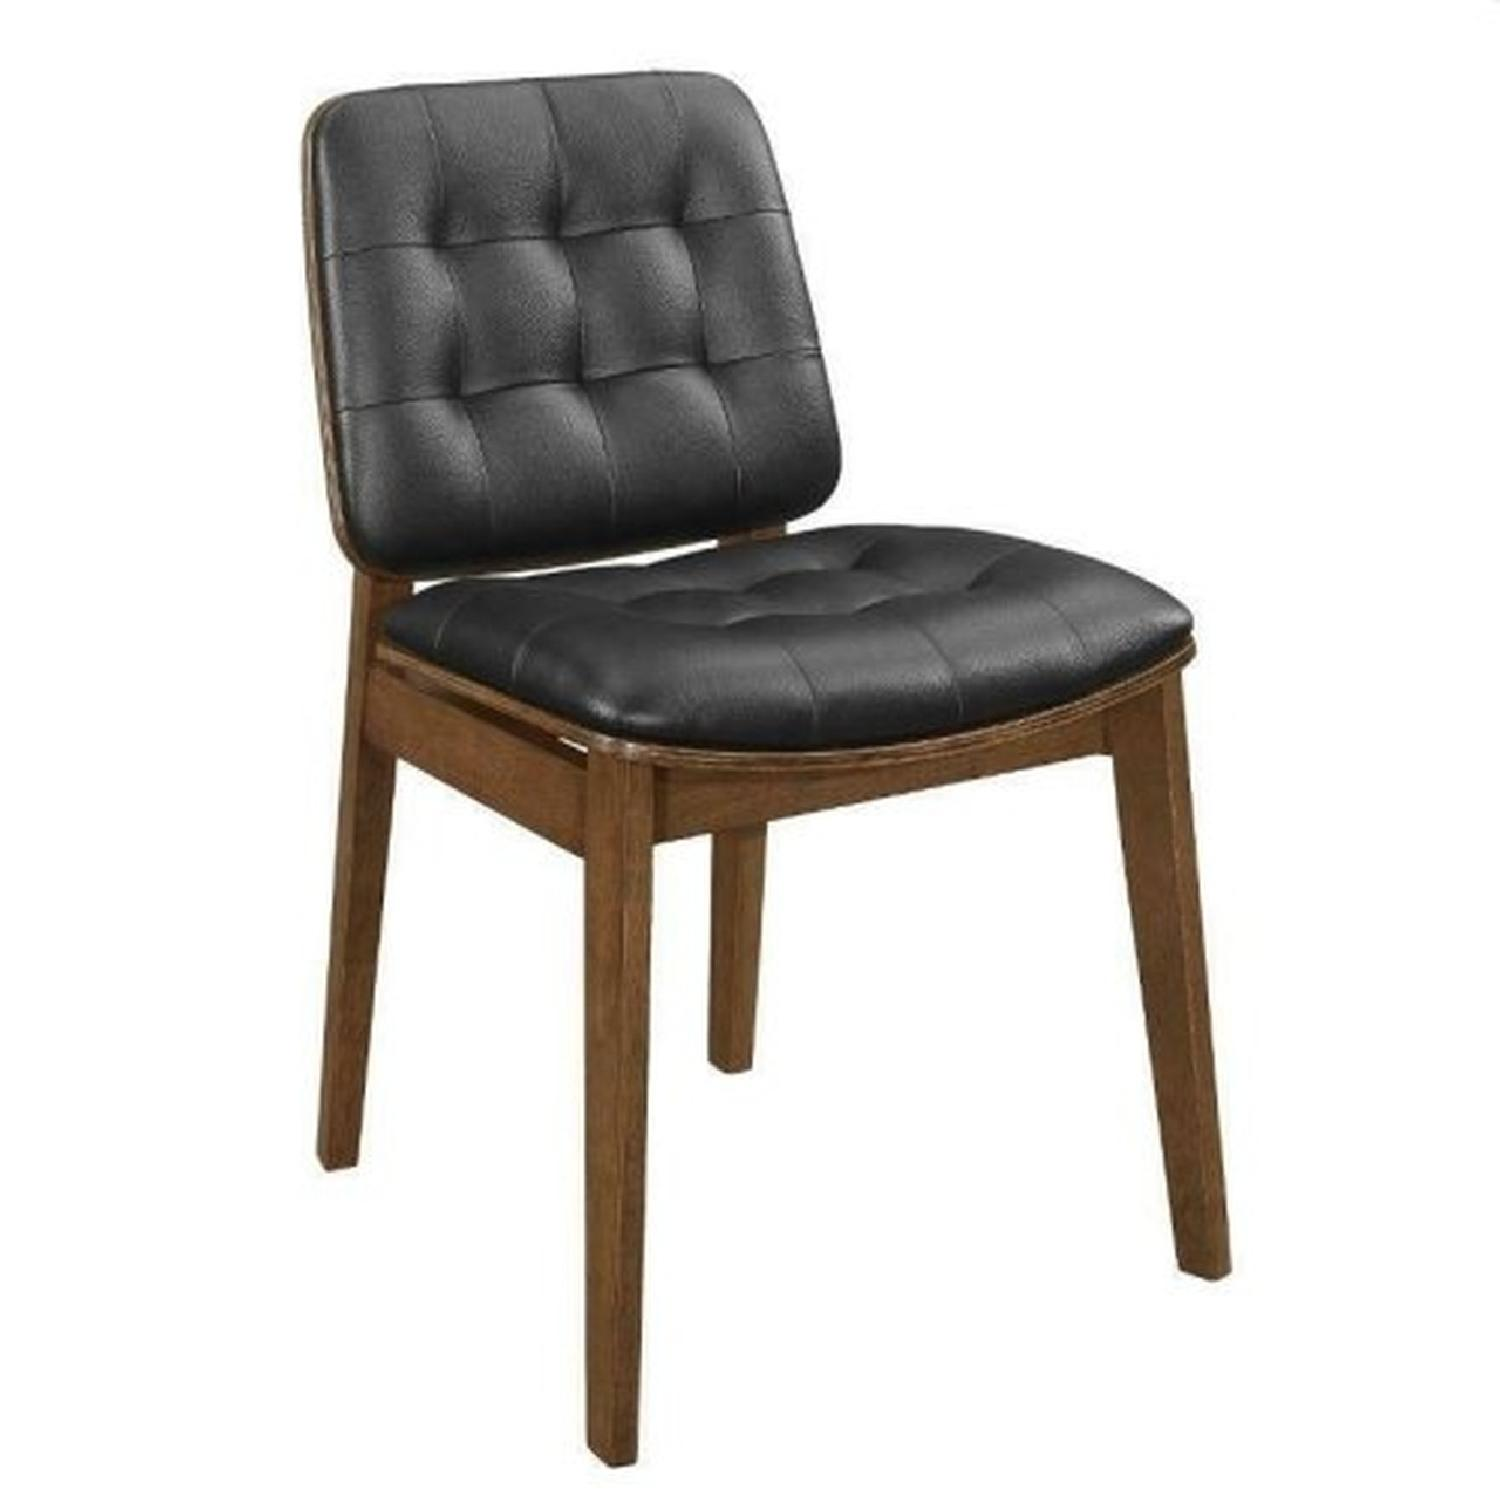 Mid Century Style Dining Chair in Walnut Frame & Black Seat - image-0